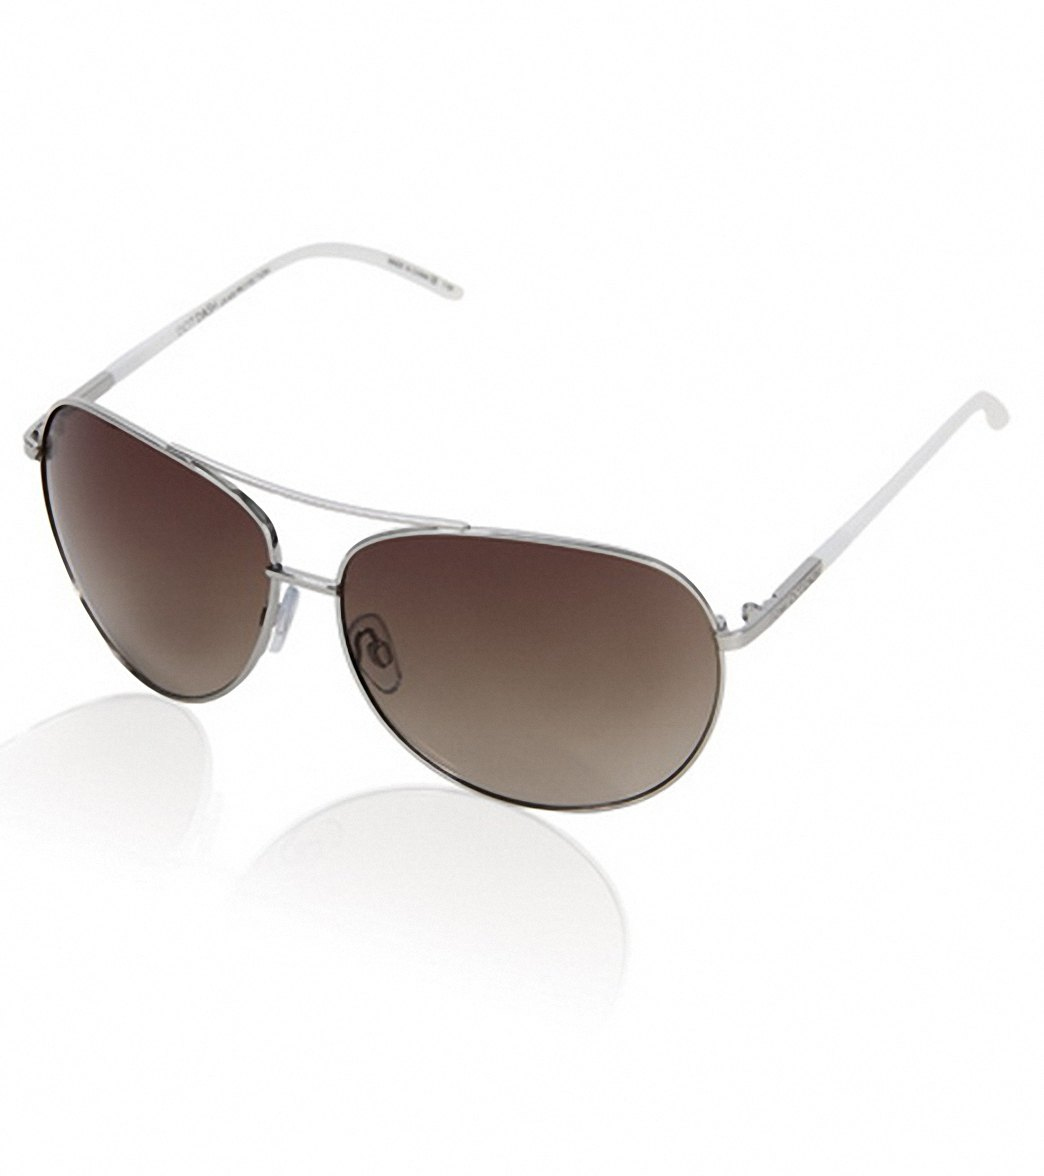 6f25ecba73 Dot Dash Nookie Sunglasses at SwimOutlet.com